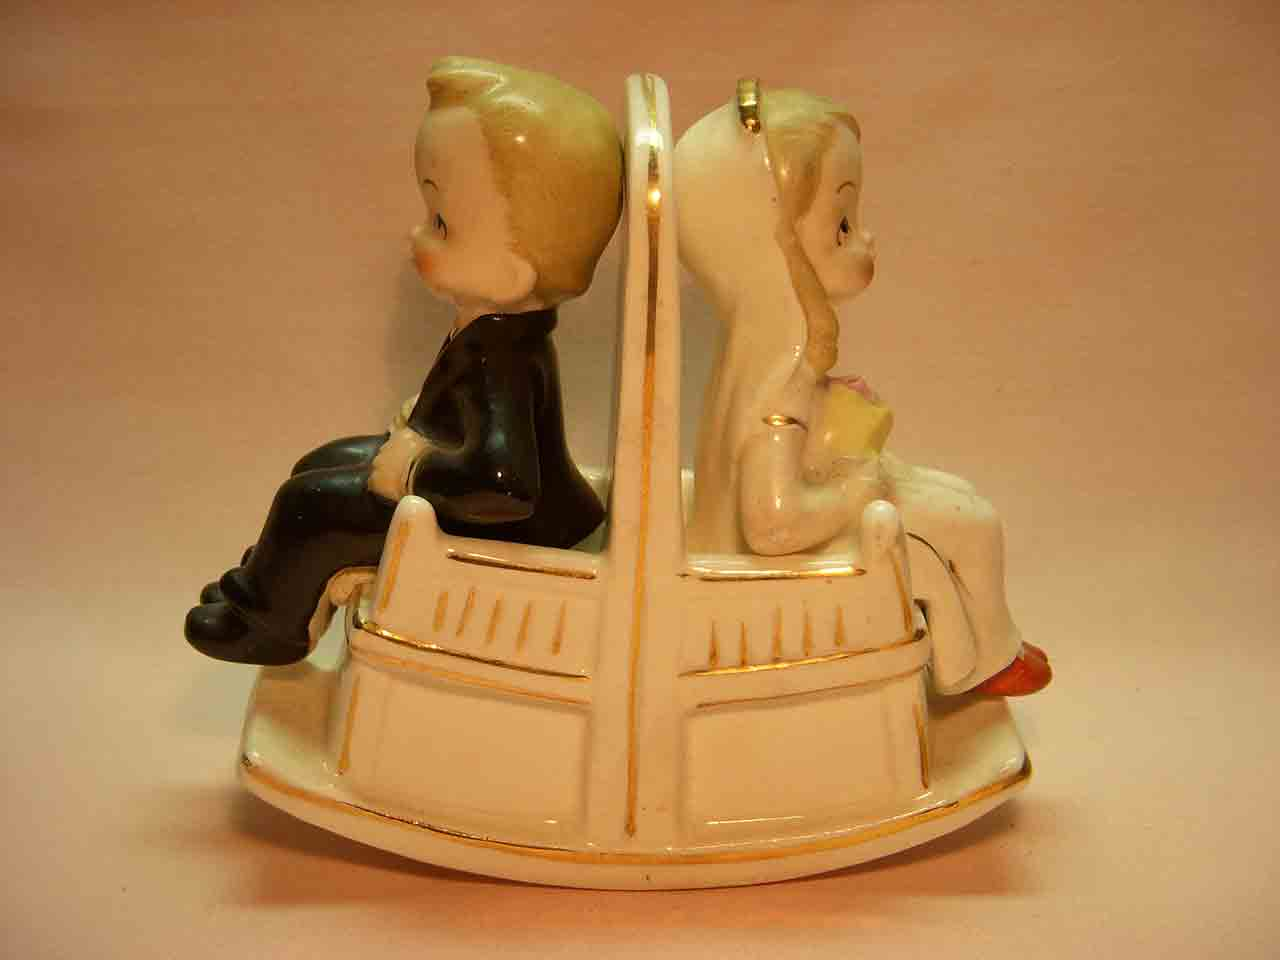 Bride and groom sitting in double rocking chair salt and pepper shaker